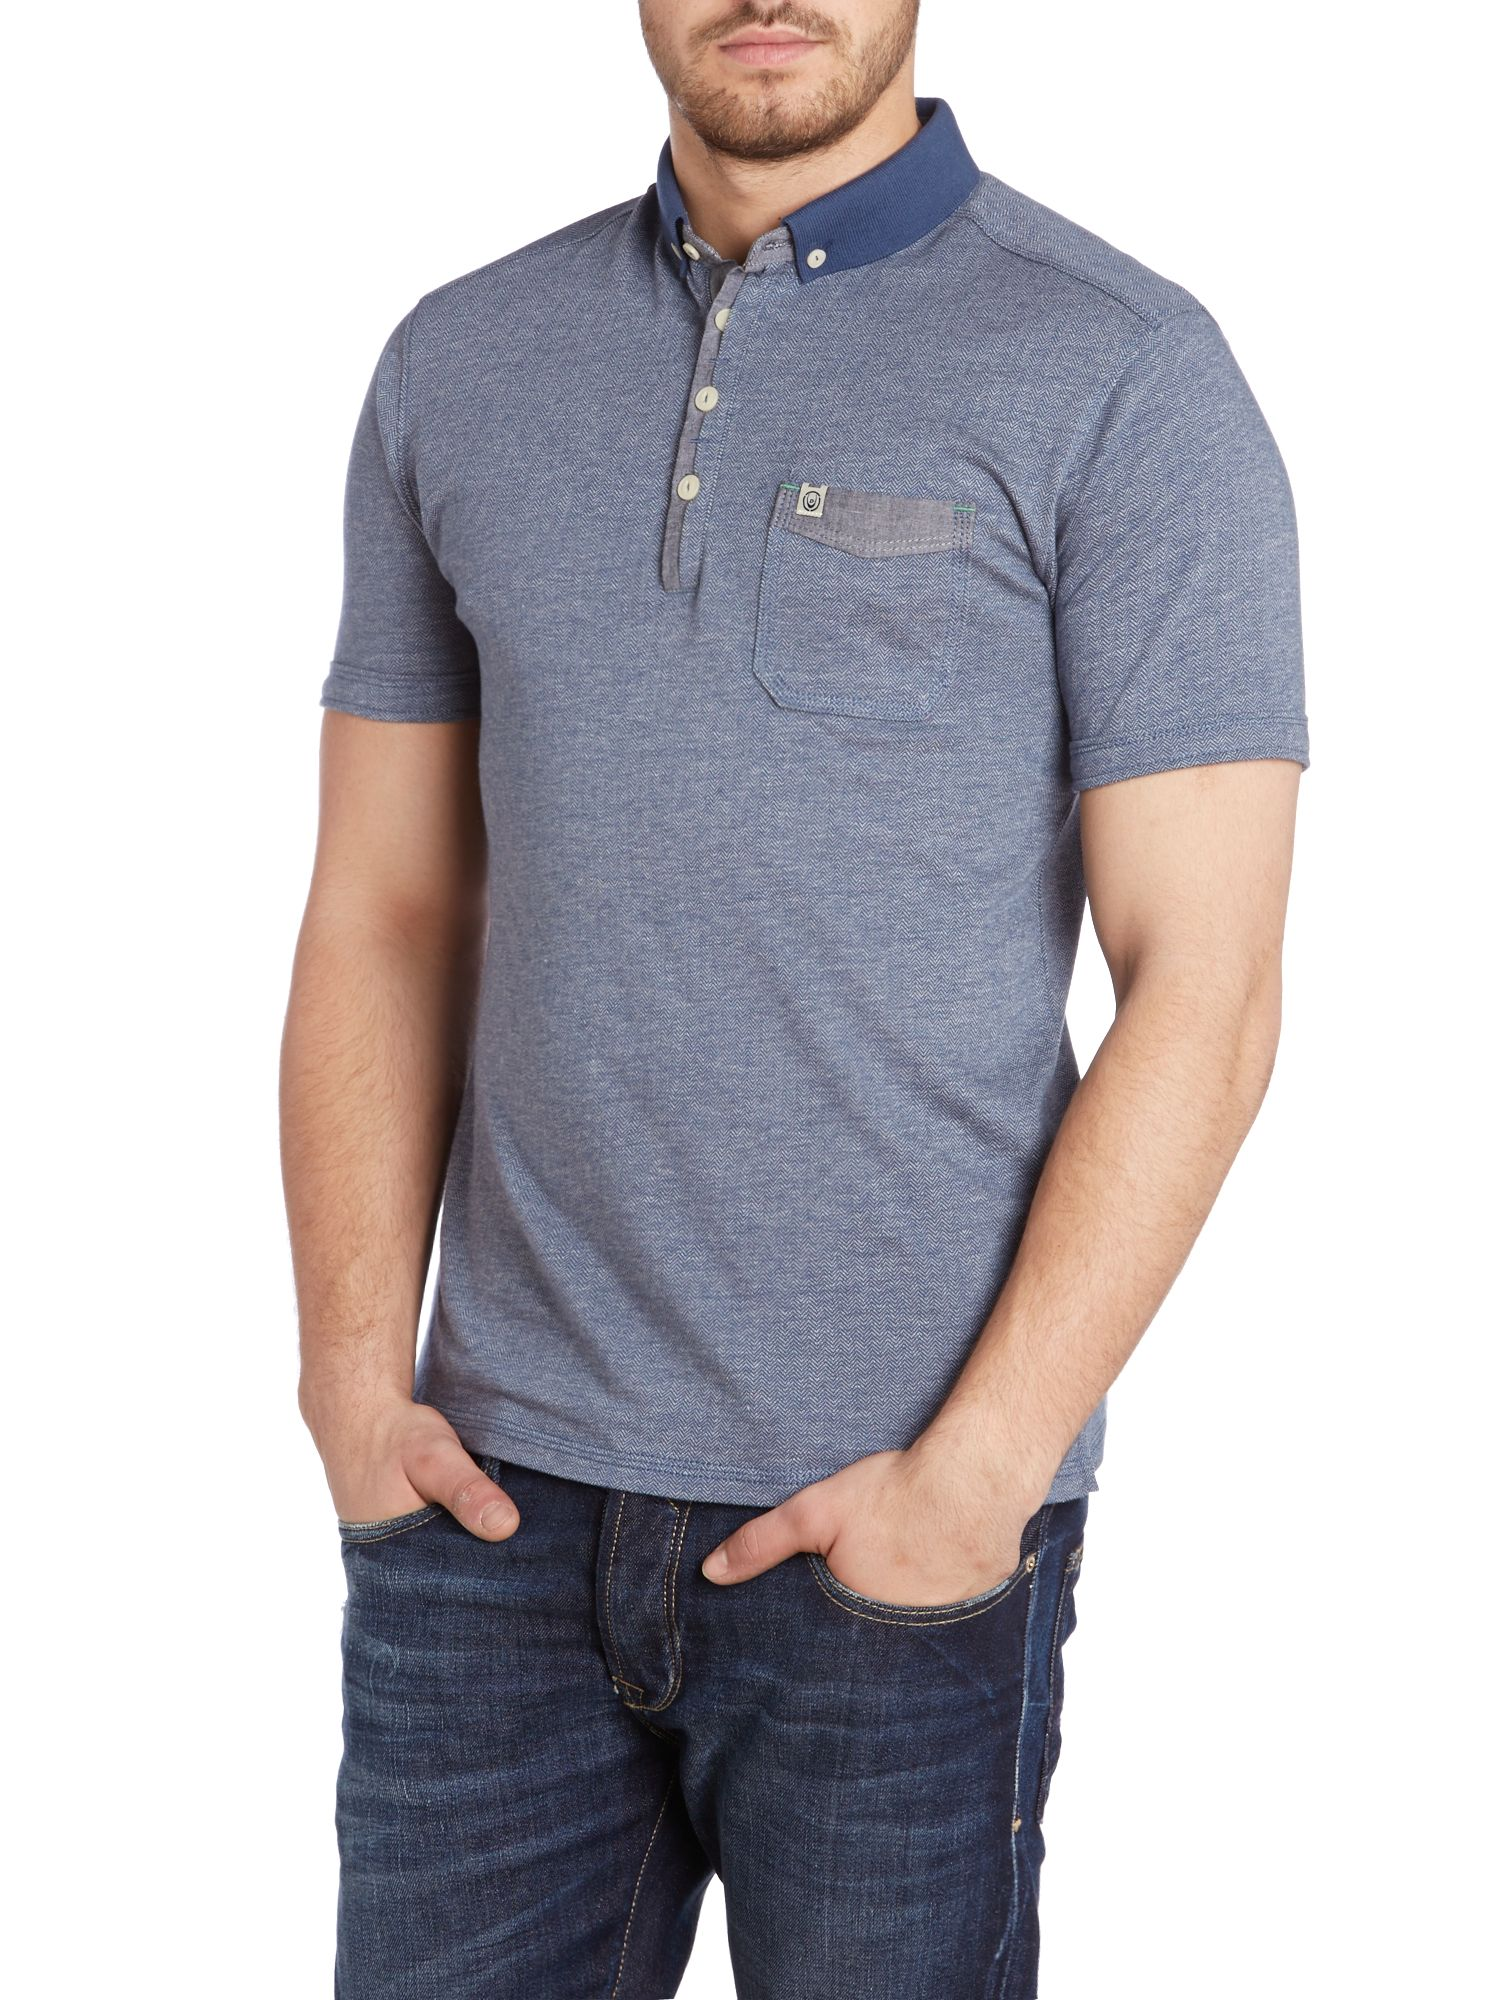 Gervais herringbone polo shirt